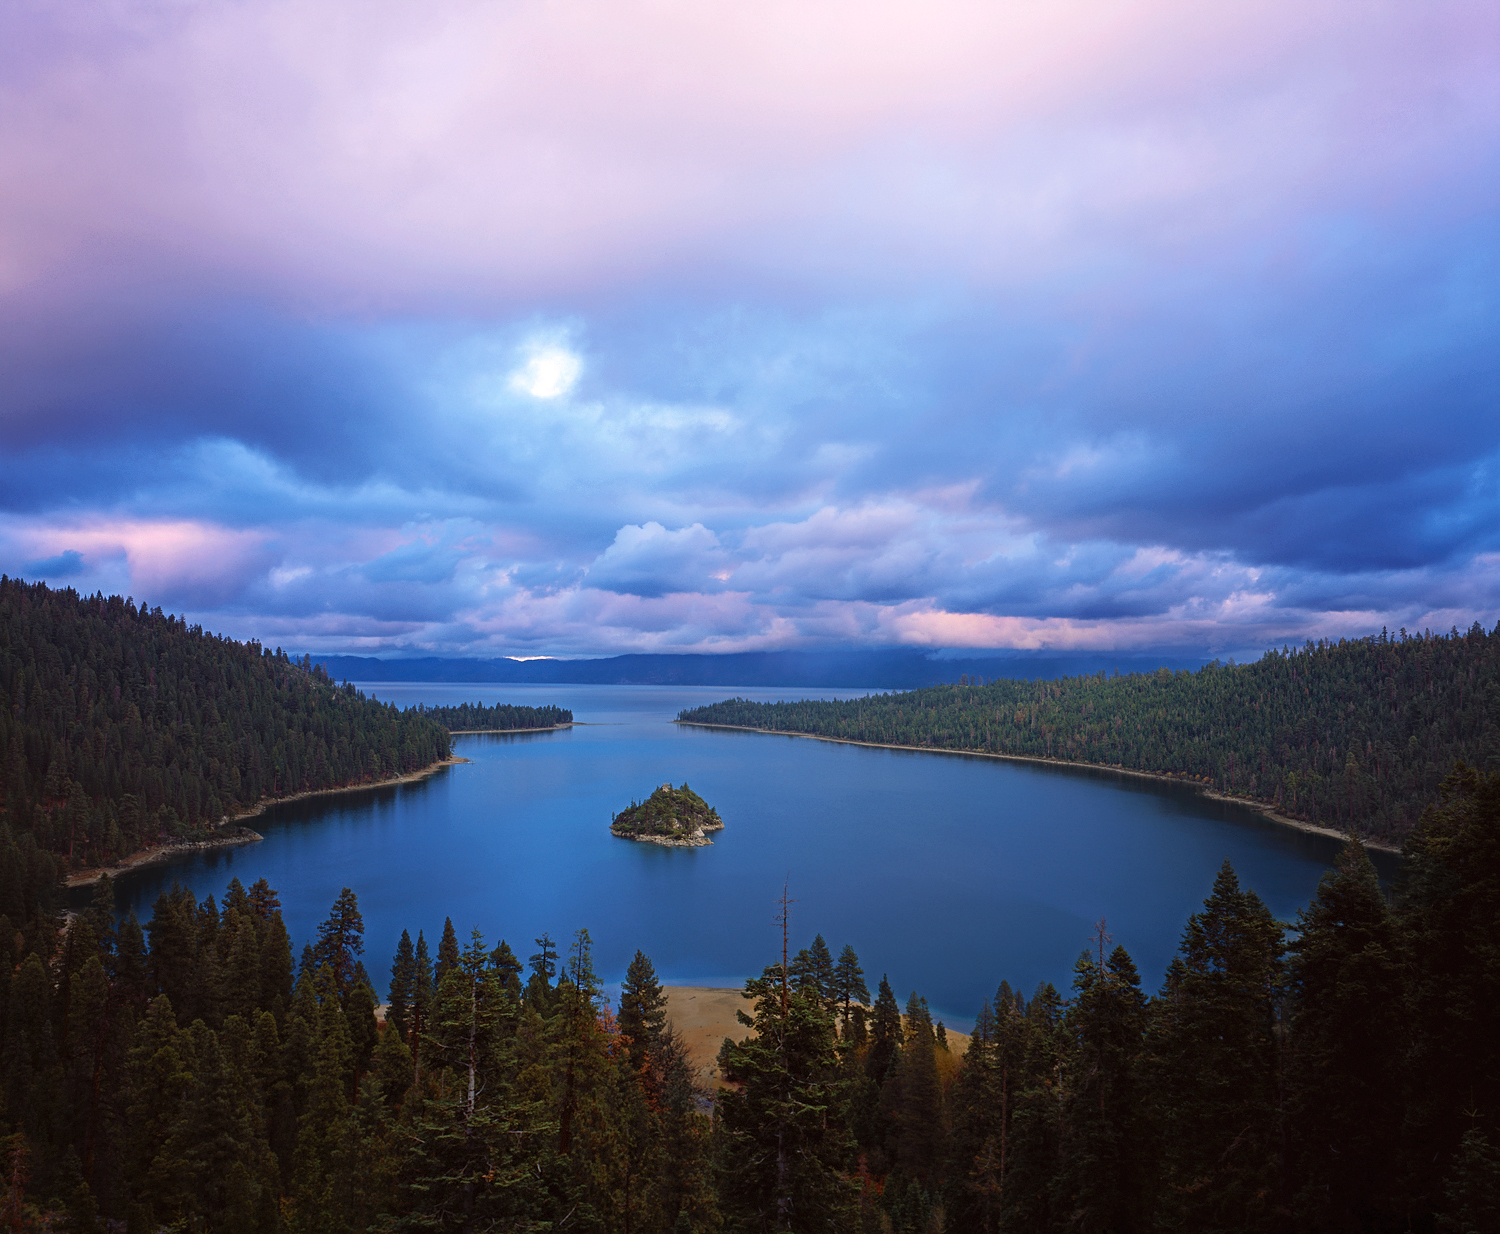 Cotton Candy Sunrise Emerald Bay.jpg